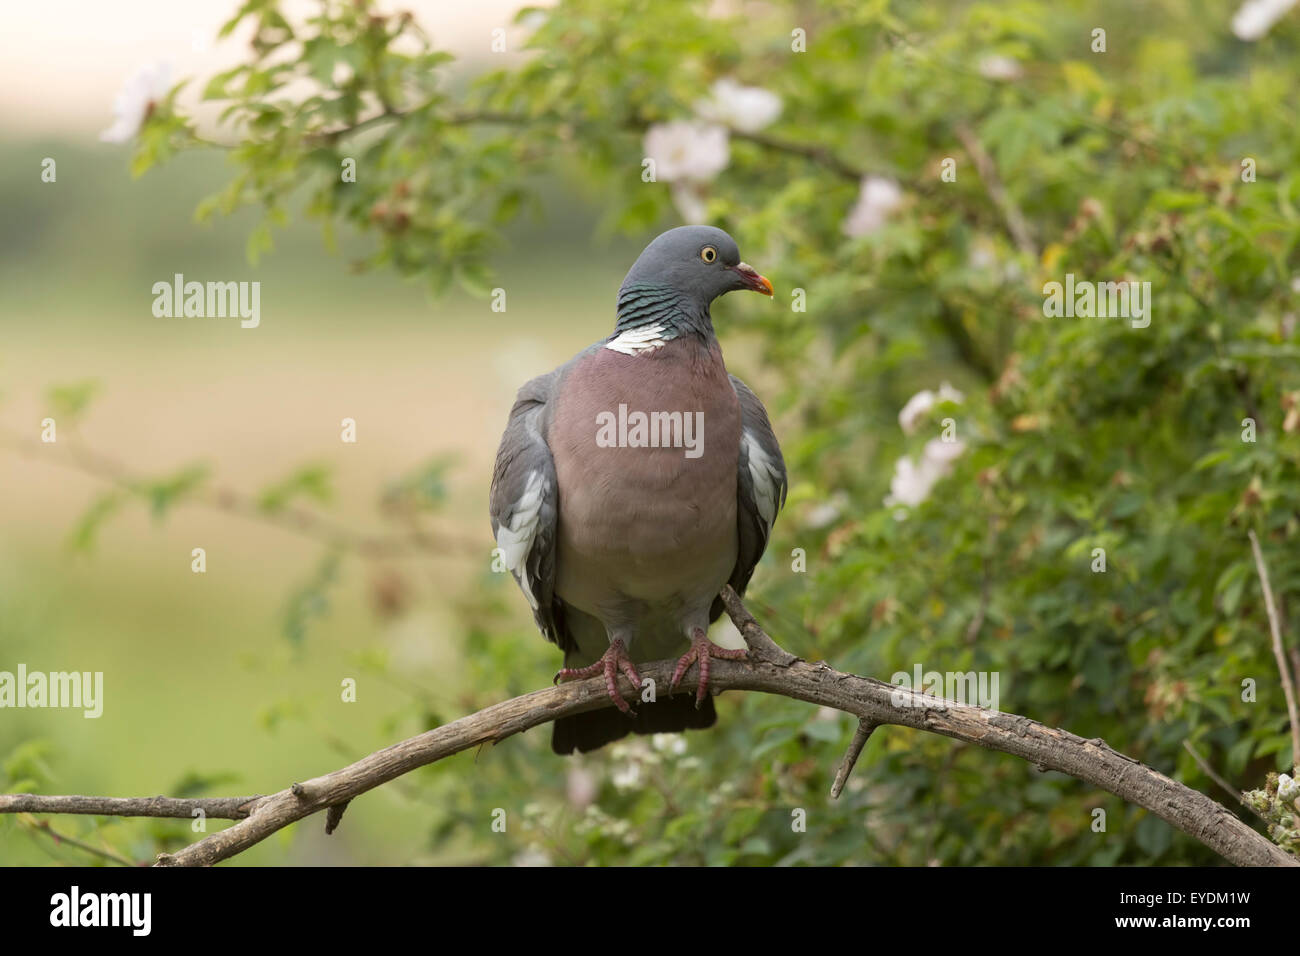 Wood Pigeon perched. - Stock Image